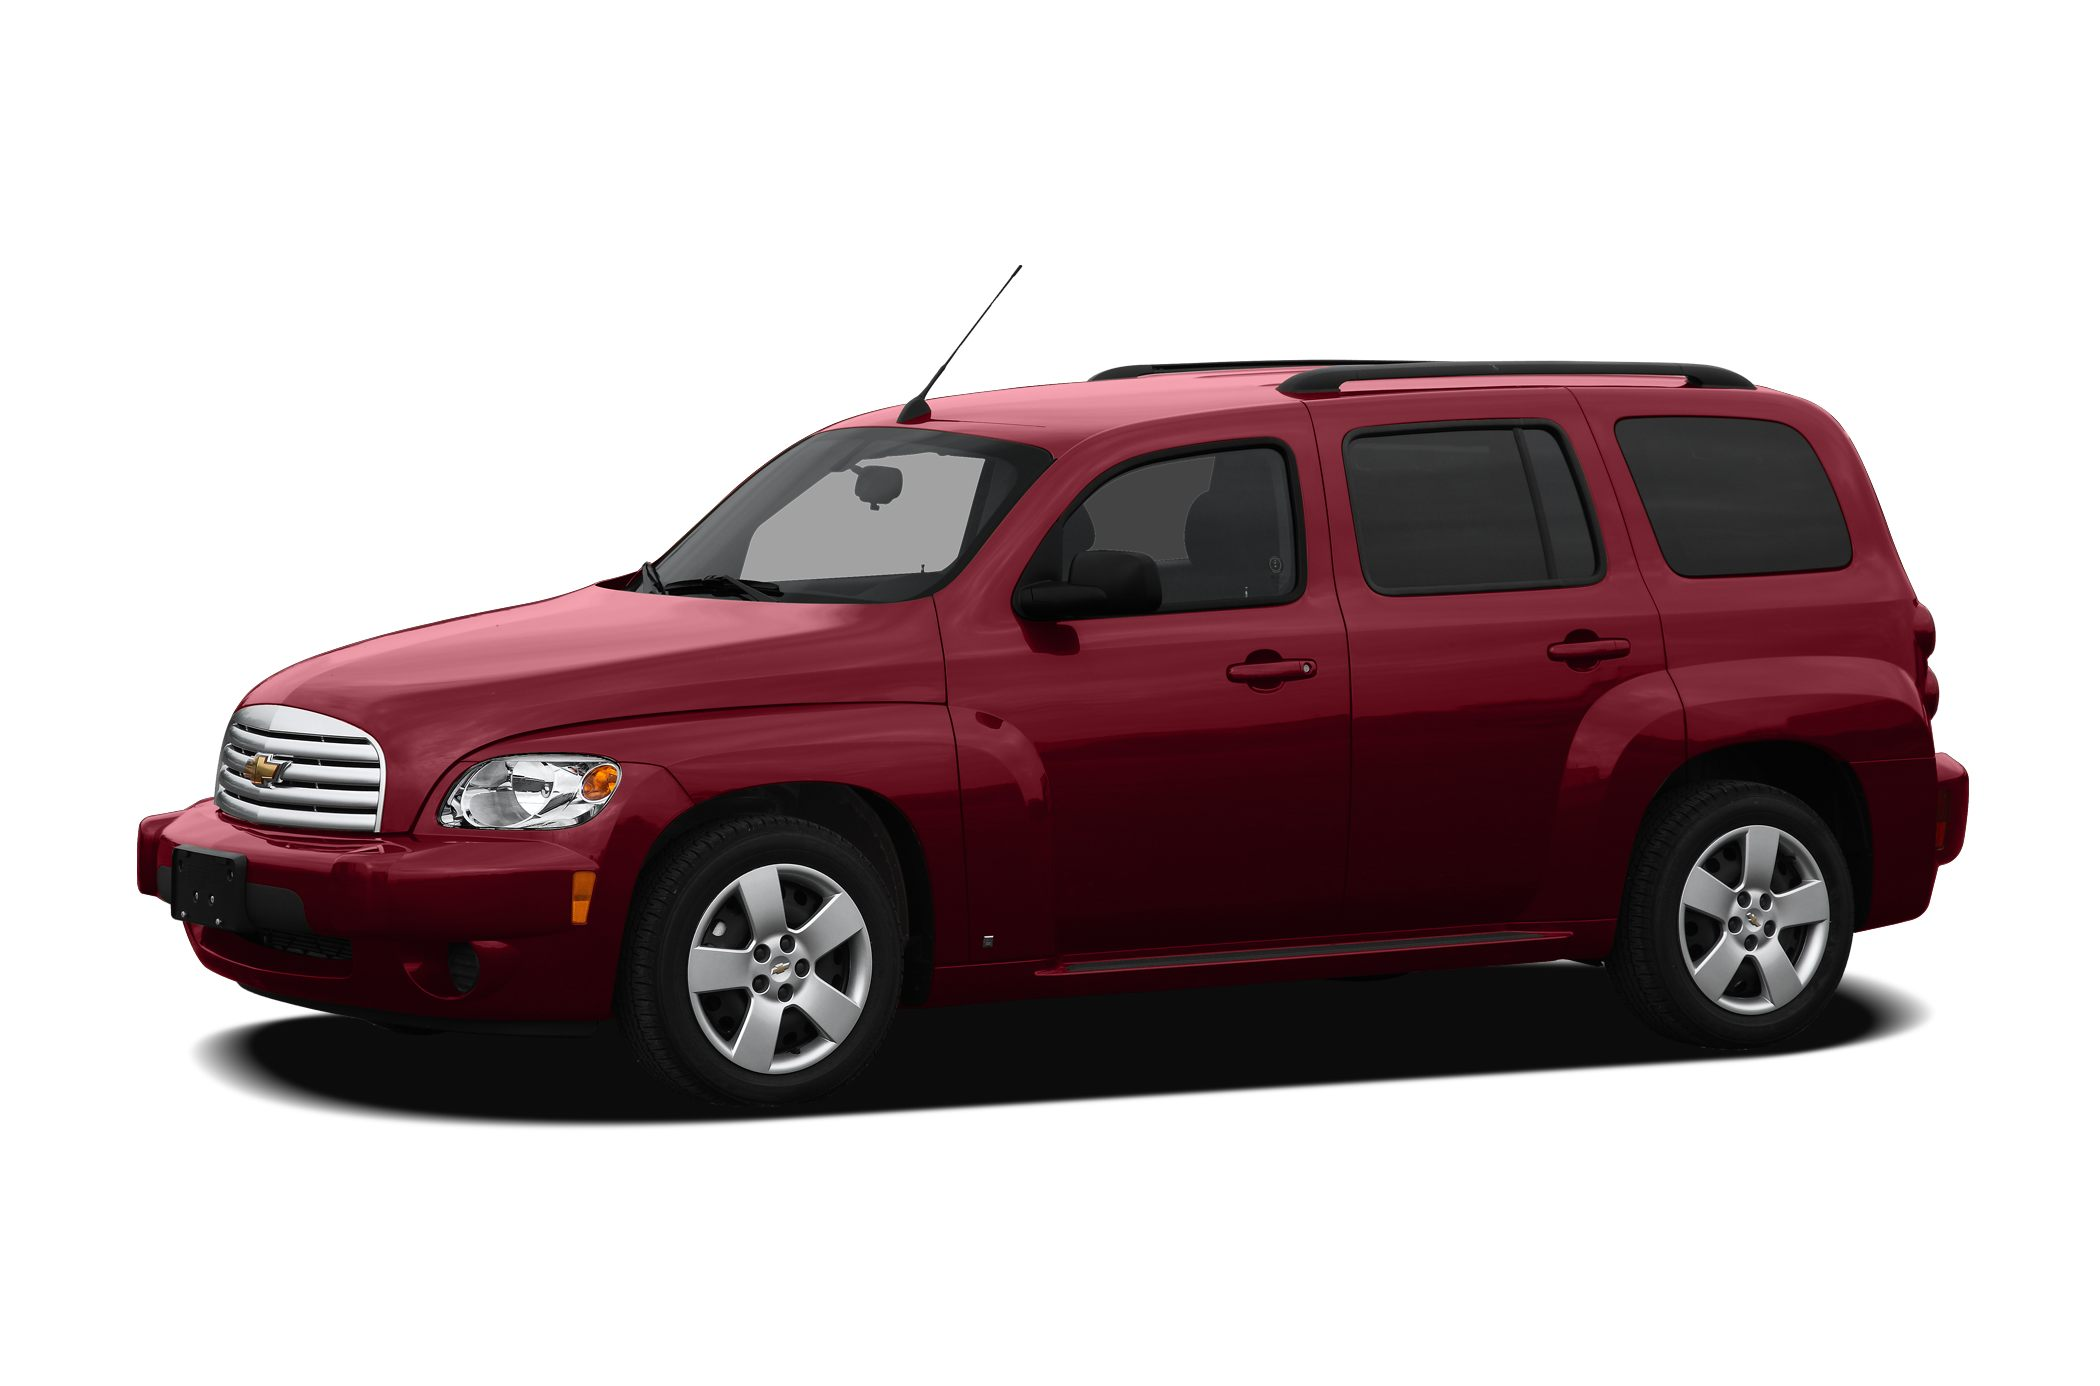 2009 Chevrolet HHR LS Wagon for sale in Branson for $9,977 with 67,289 miles.